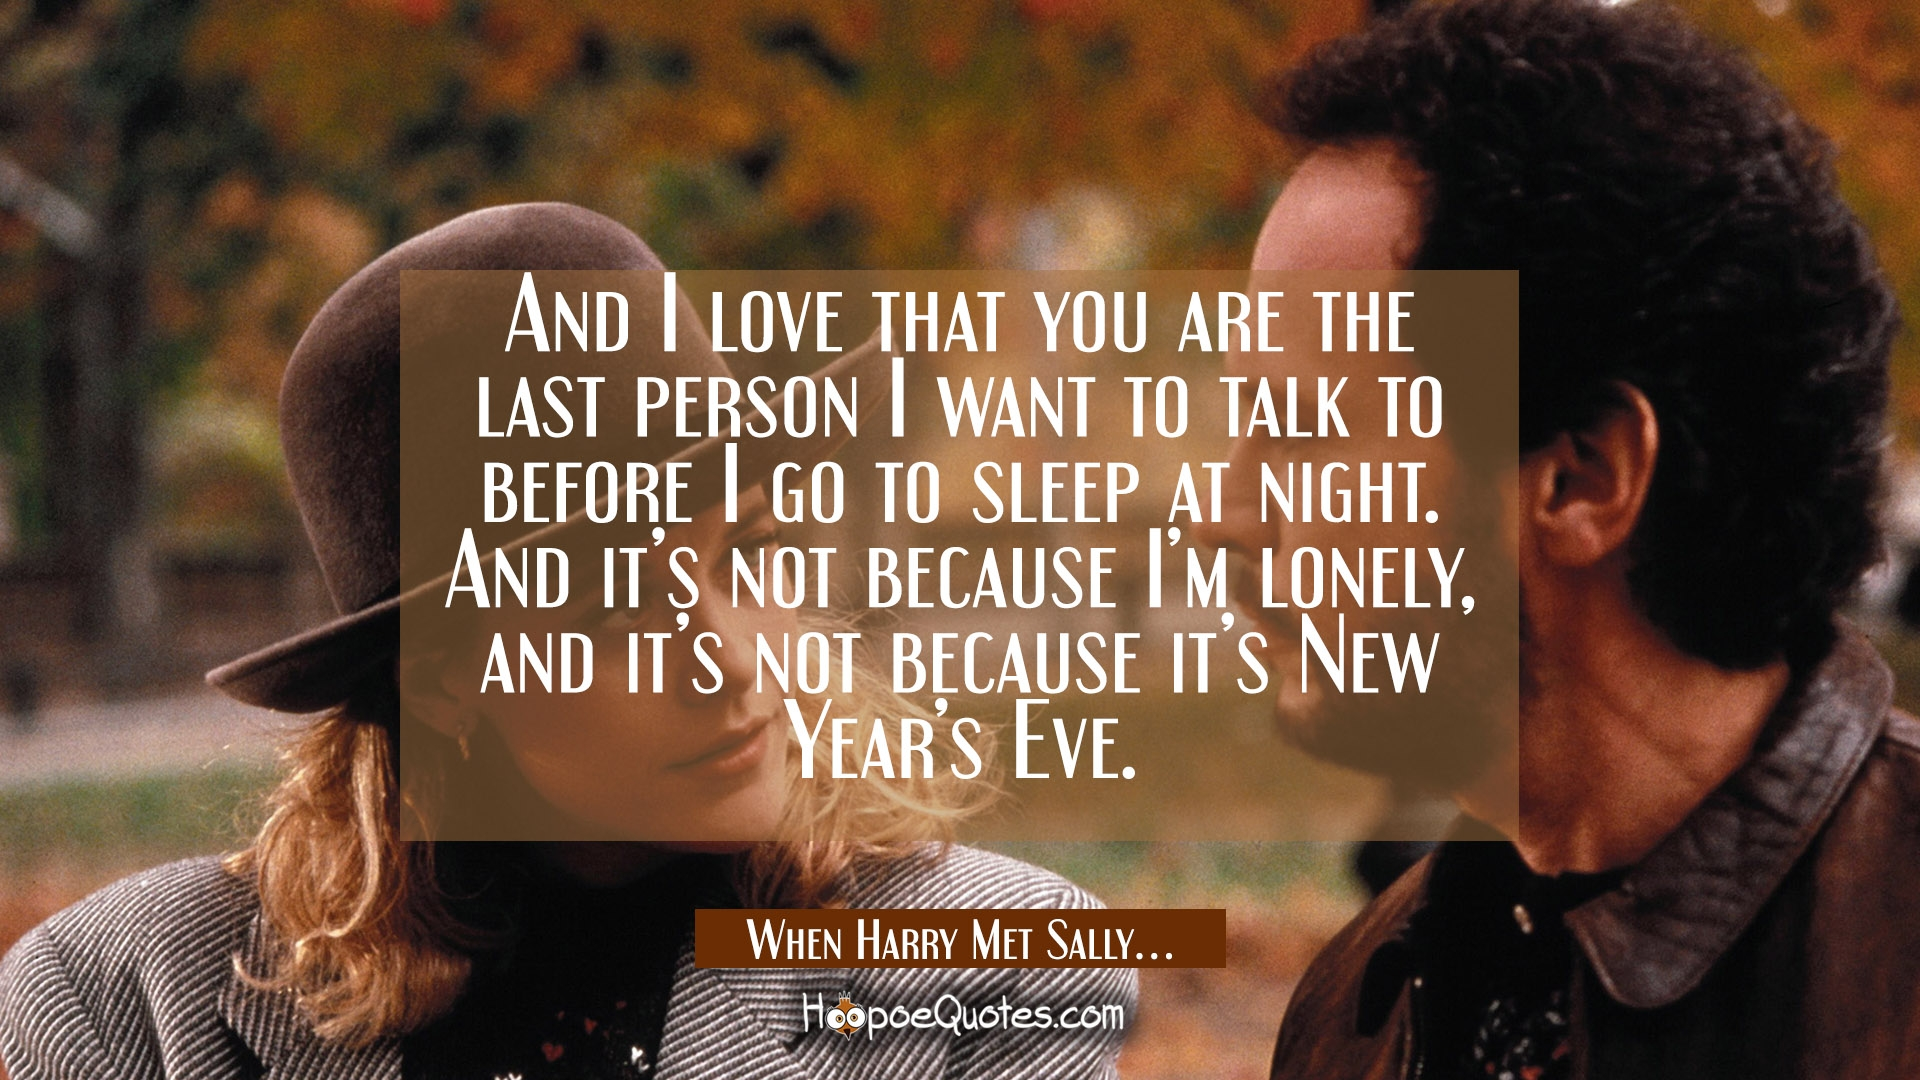 I Need To Talk To You: And I Love That You Are The Last Person I Want To Talk To